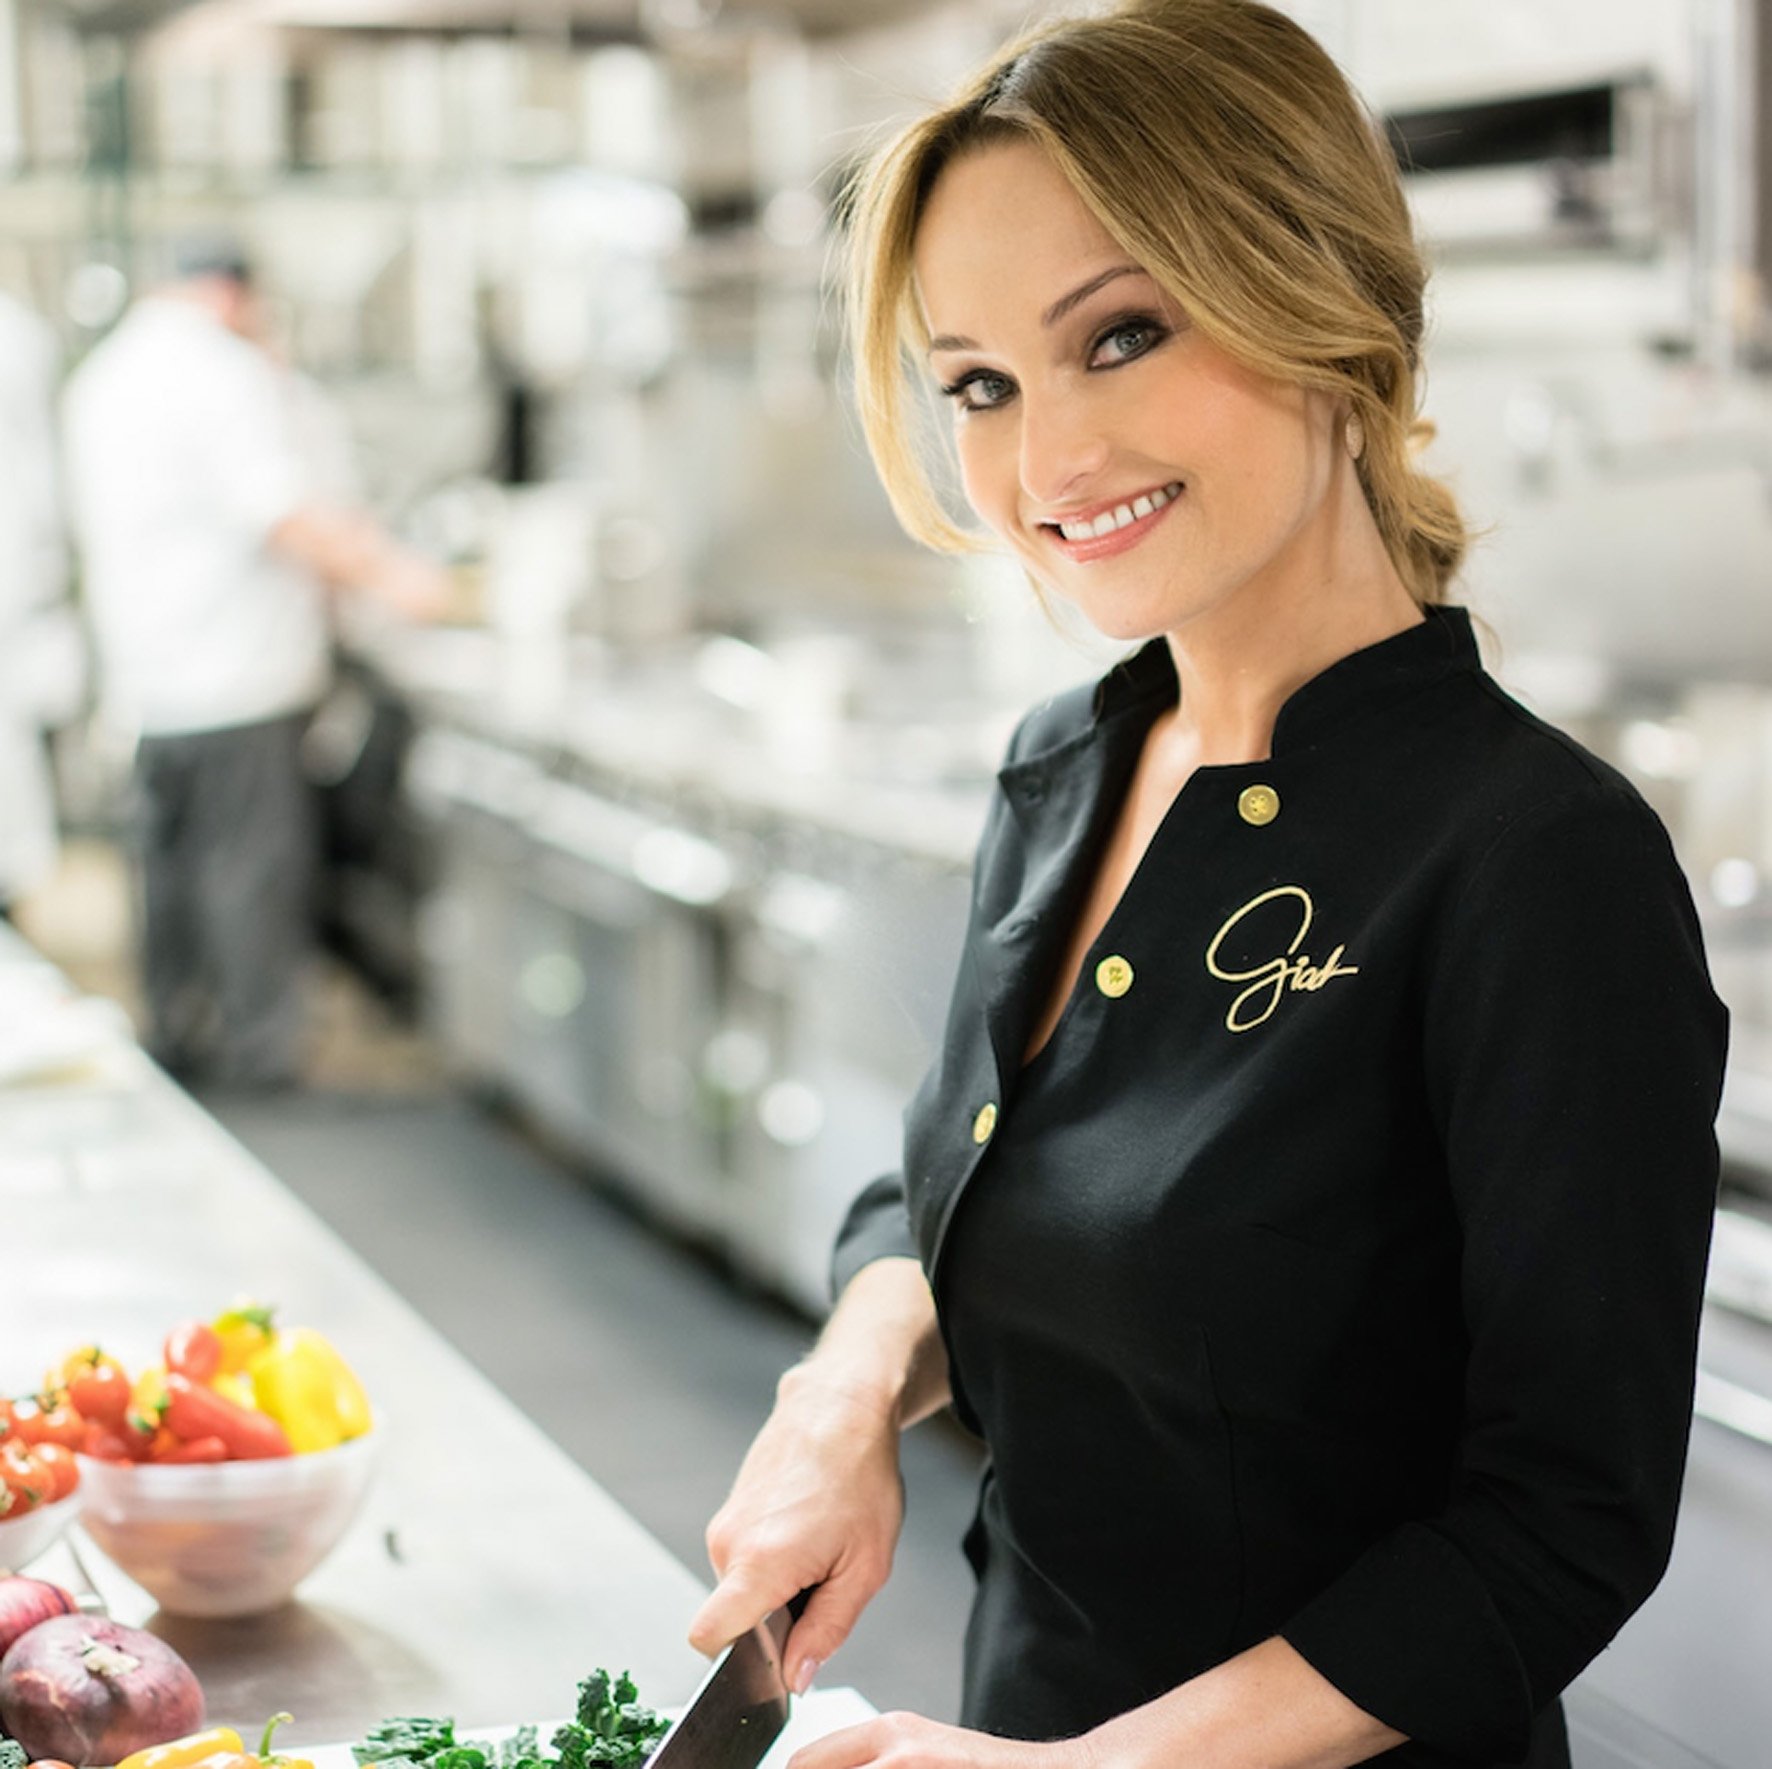 Meet Giada De Laurentiis During Her Book Tour At The Gardens Mall